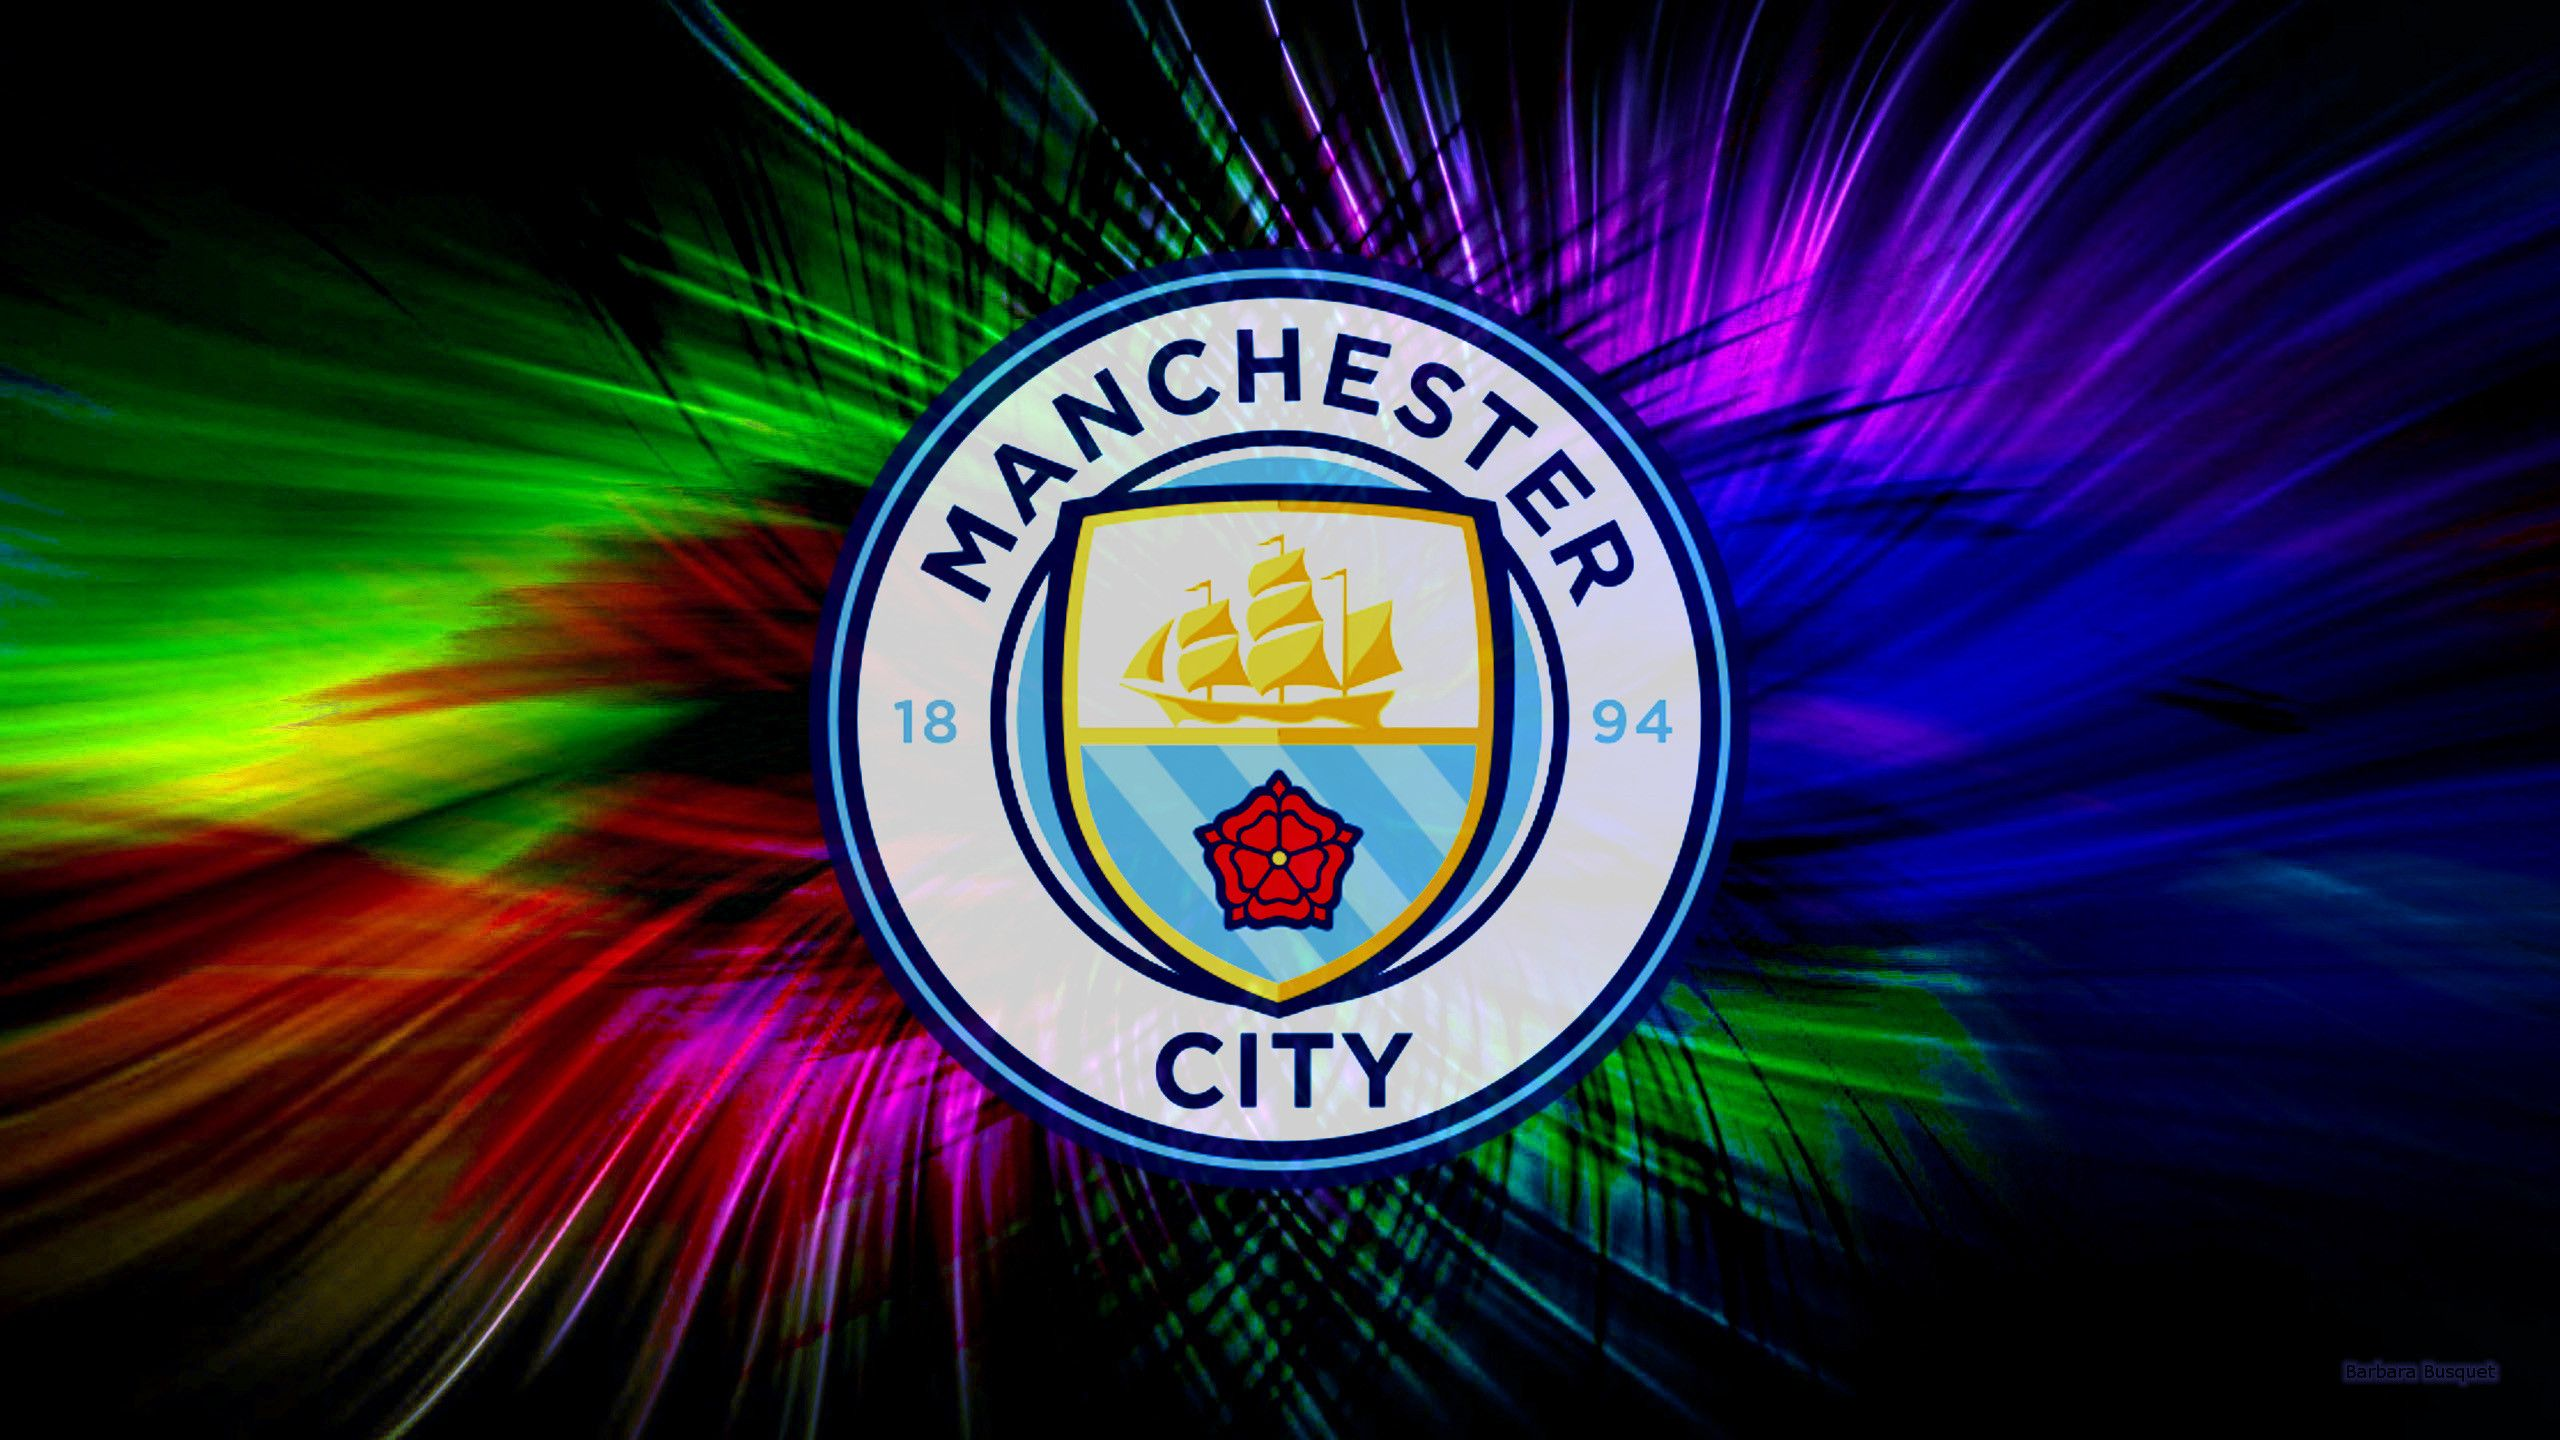 Download Manchester City Wallpapers Hd Wallpaper Manchester City Manchester